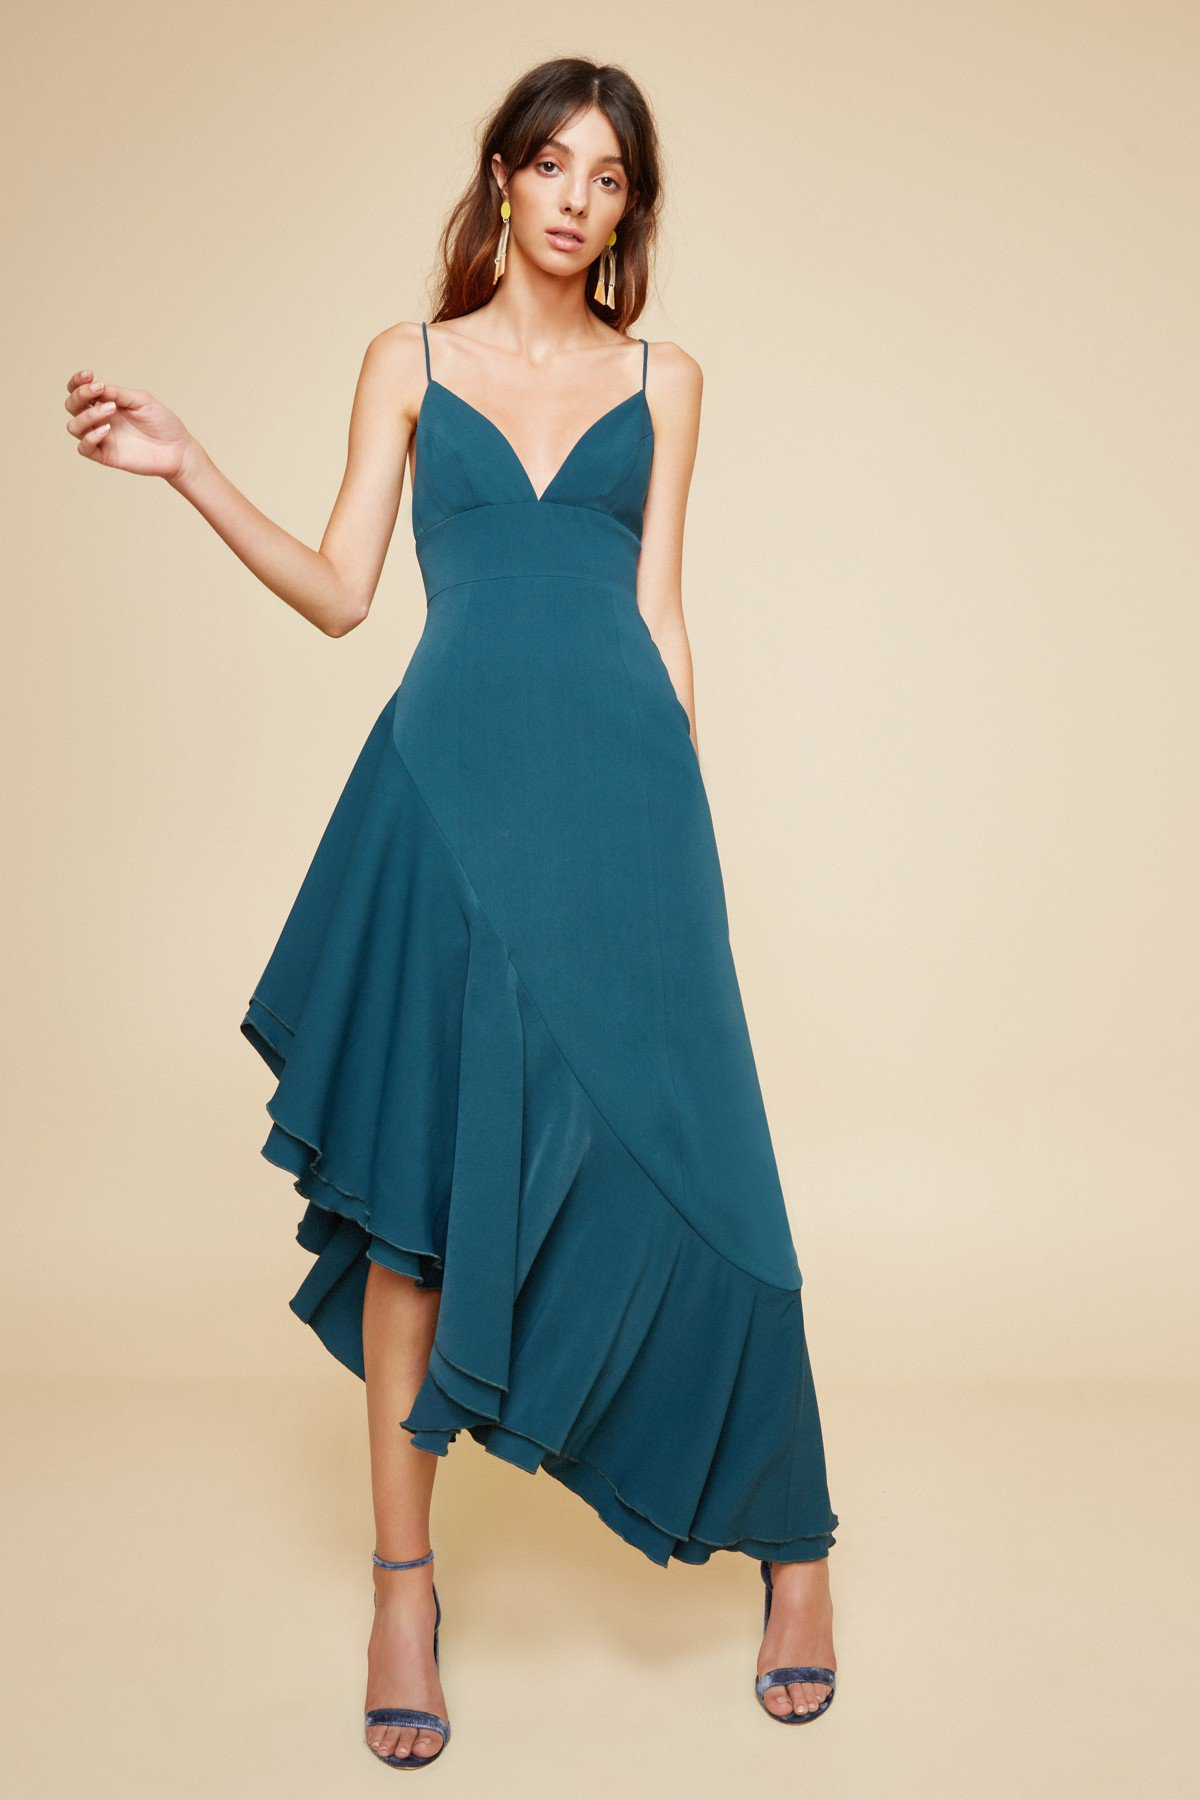 C/MEO Collective Temptation S/S Gown